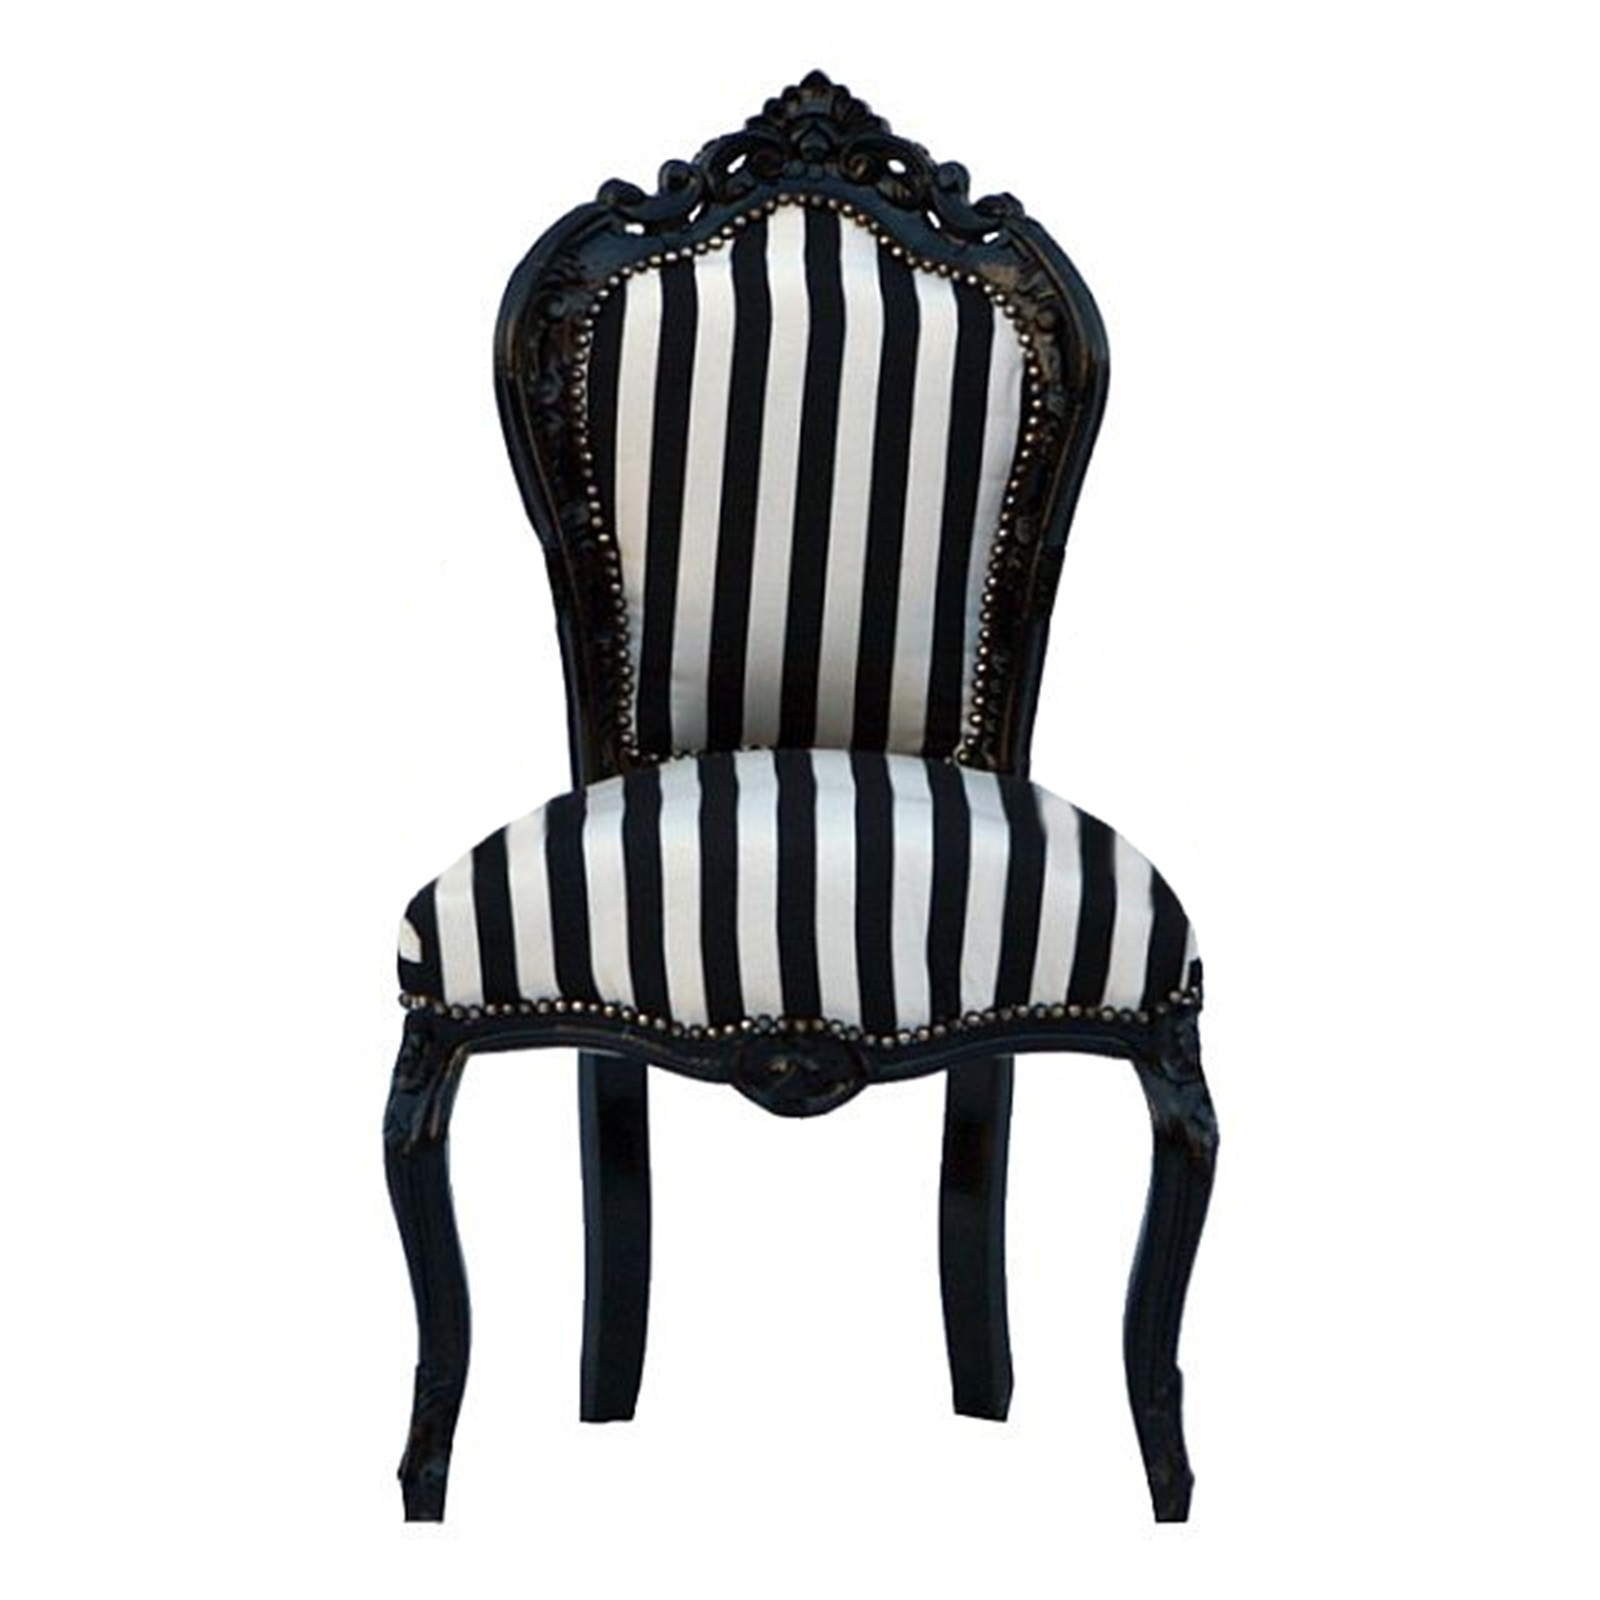 Striped Chair Black Wood Frame Black And White French U2013 Bild 1